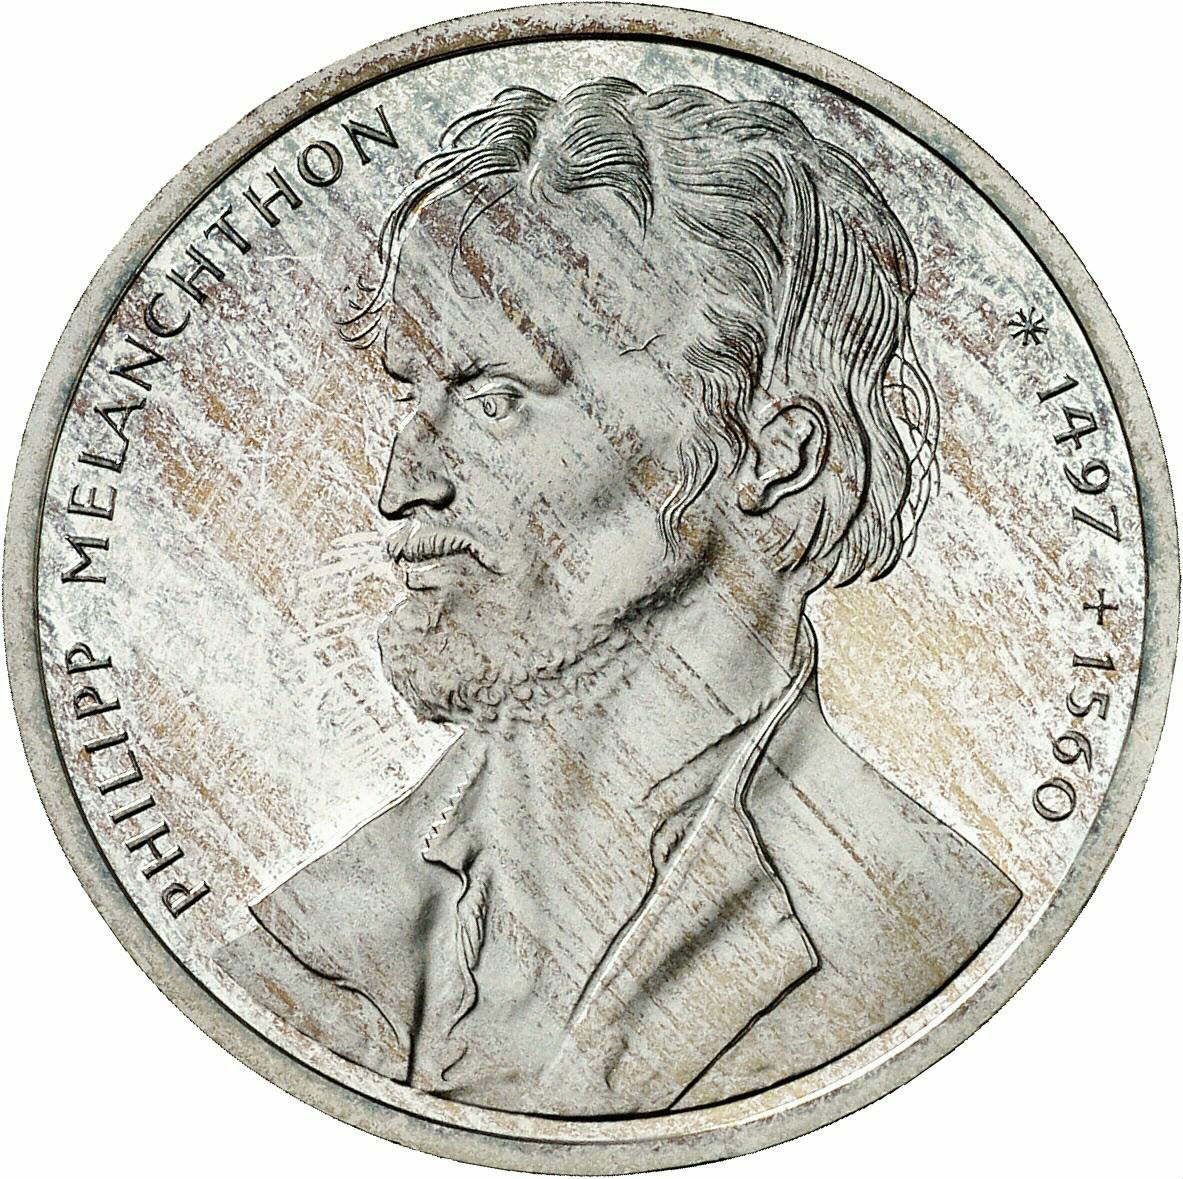 DE 10 Deutsche Mark 1997 F